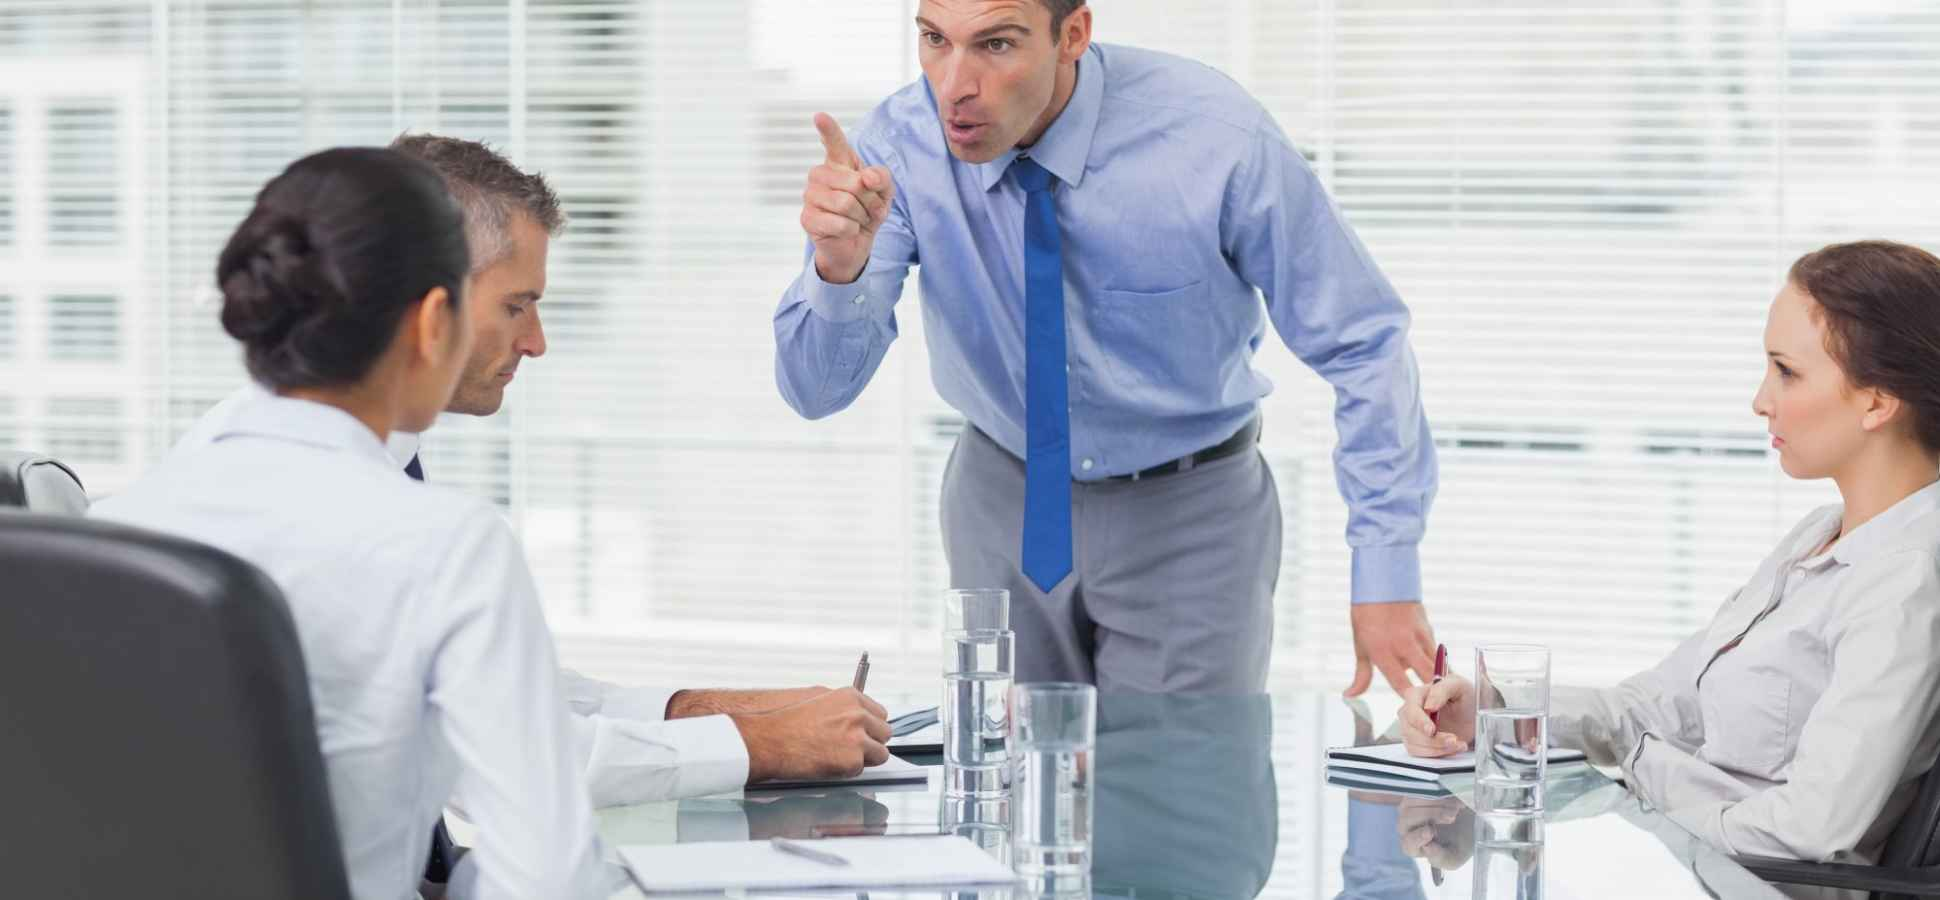 6 Important Signs That Confirm That You're a Really Bad Boss